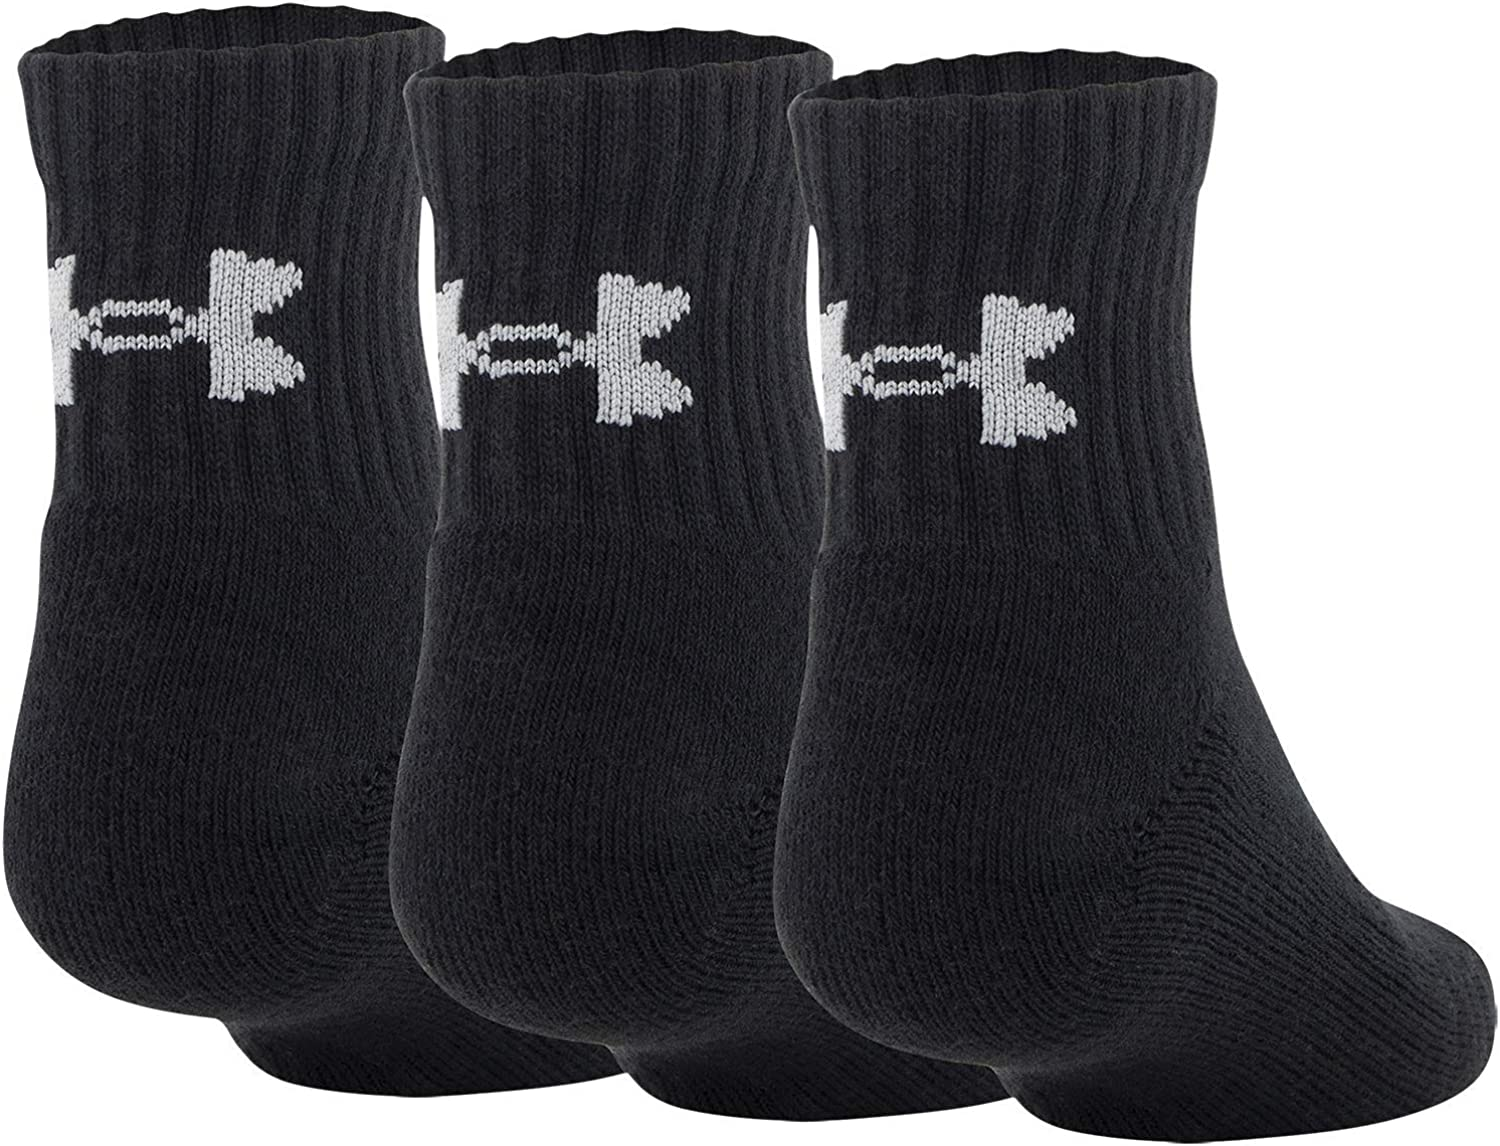 Under National uniform free shipping Armour Youth Training Socks Denver Mall Cotton 3-Pairs Quarter